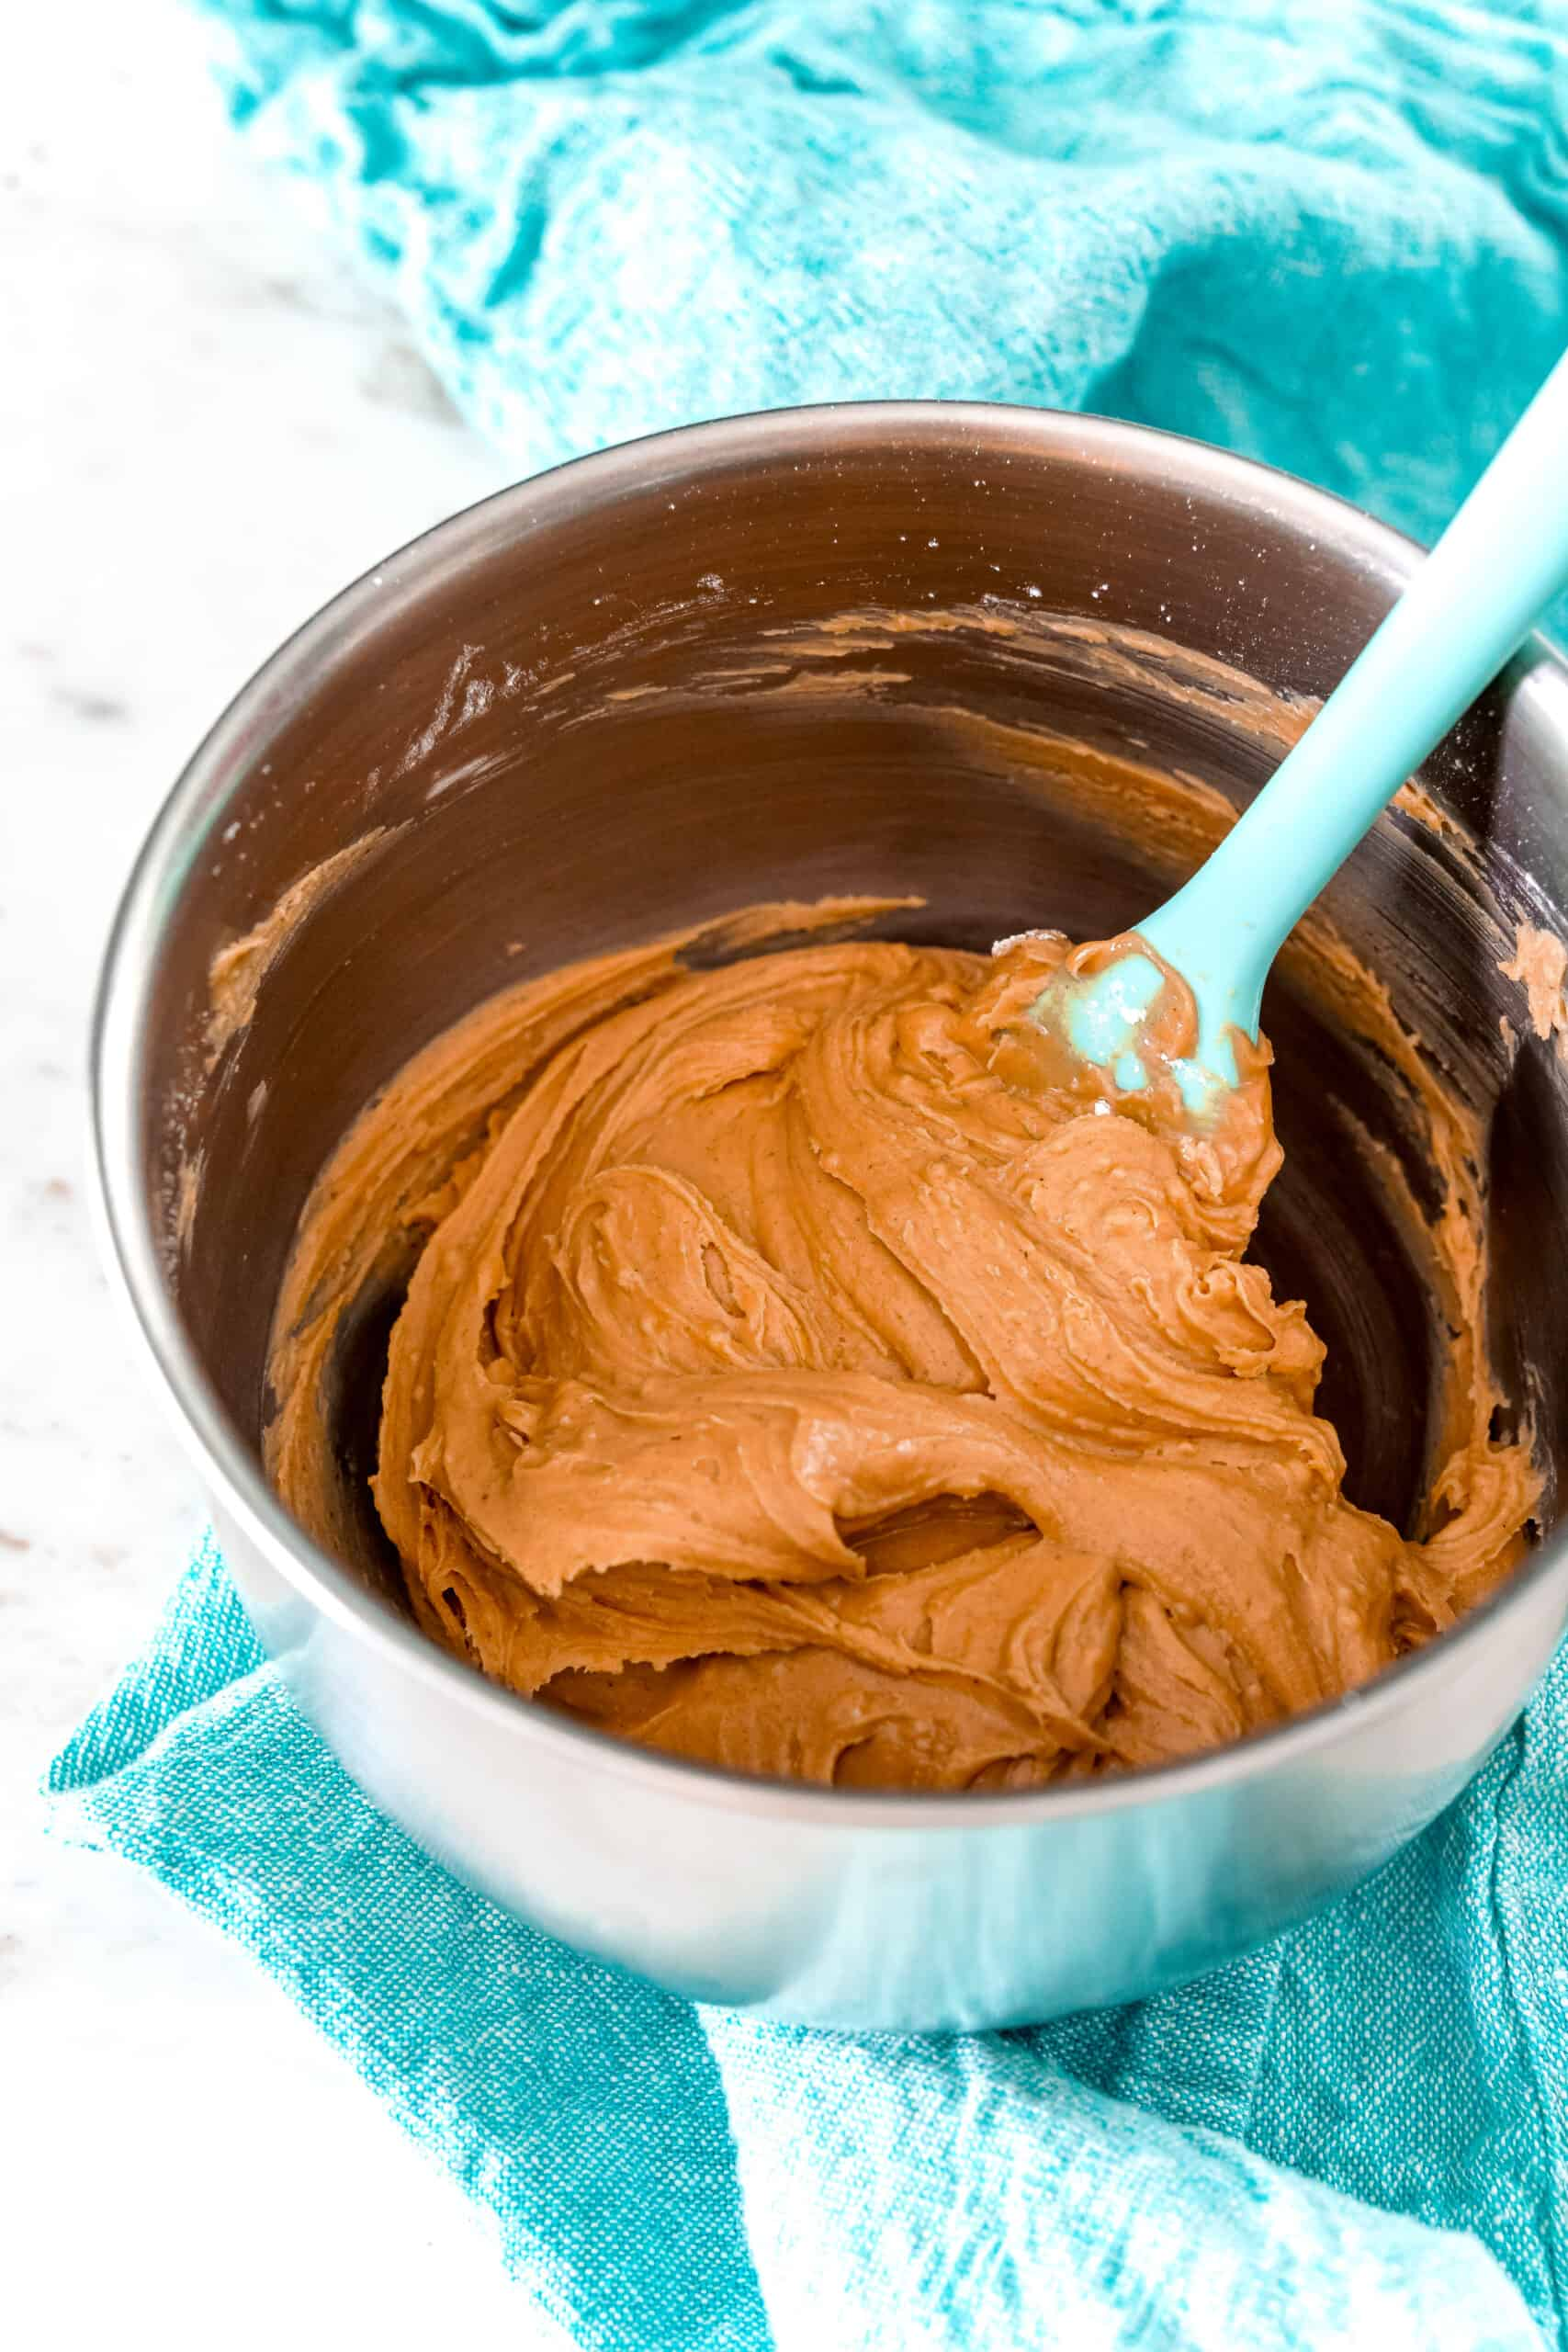 Peanut butter cup filling in a metal mixing bowl with teal napkin beneath the bowl.